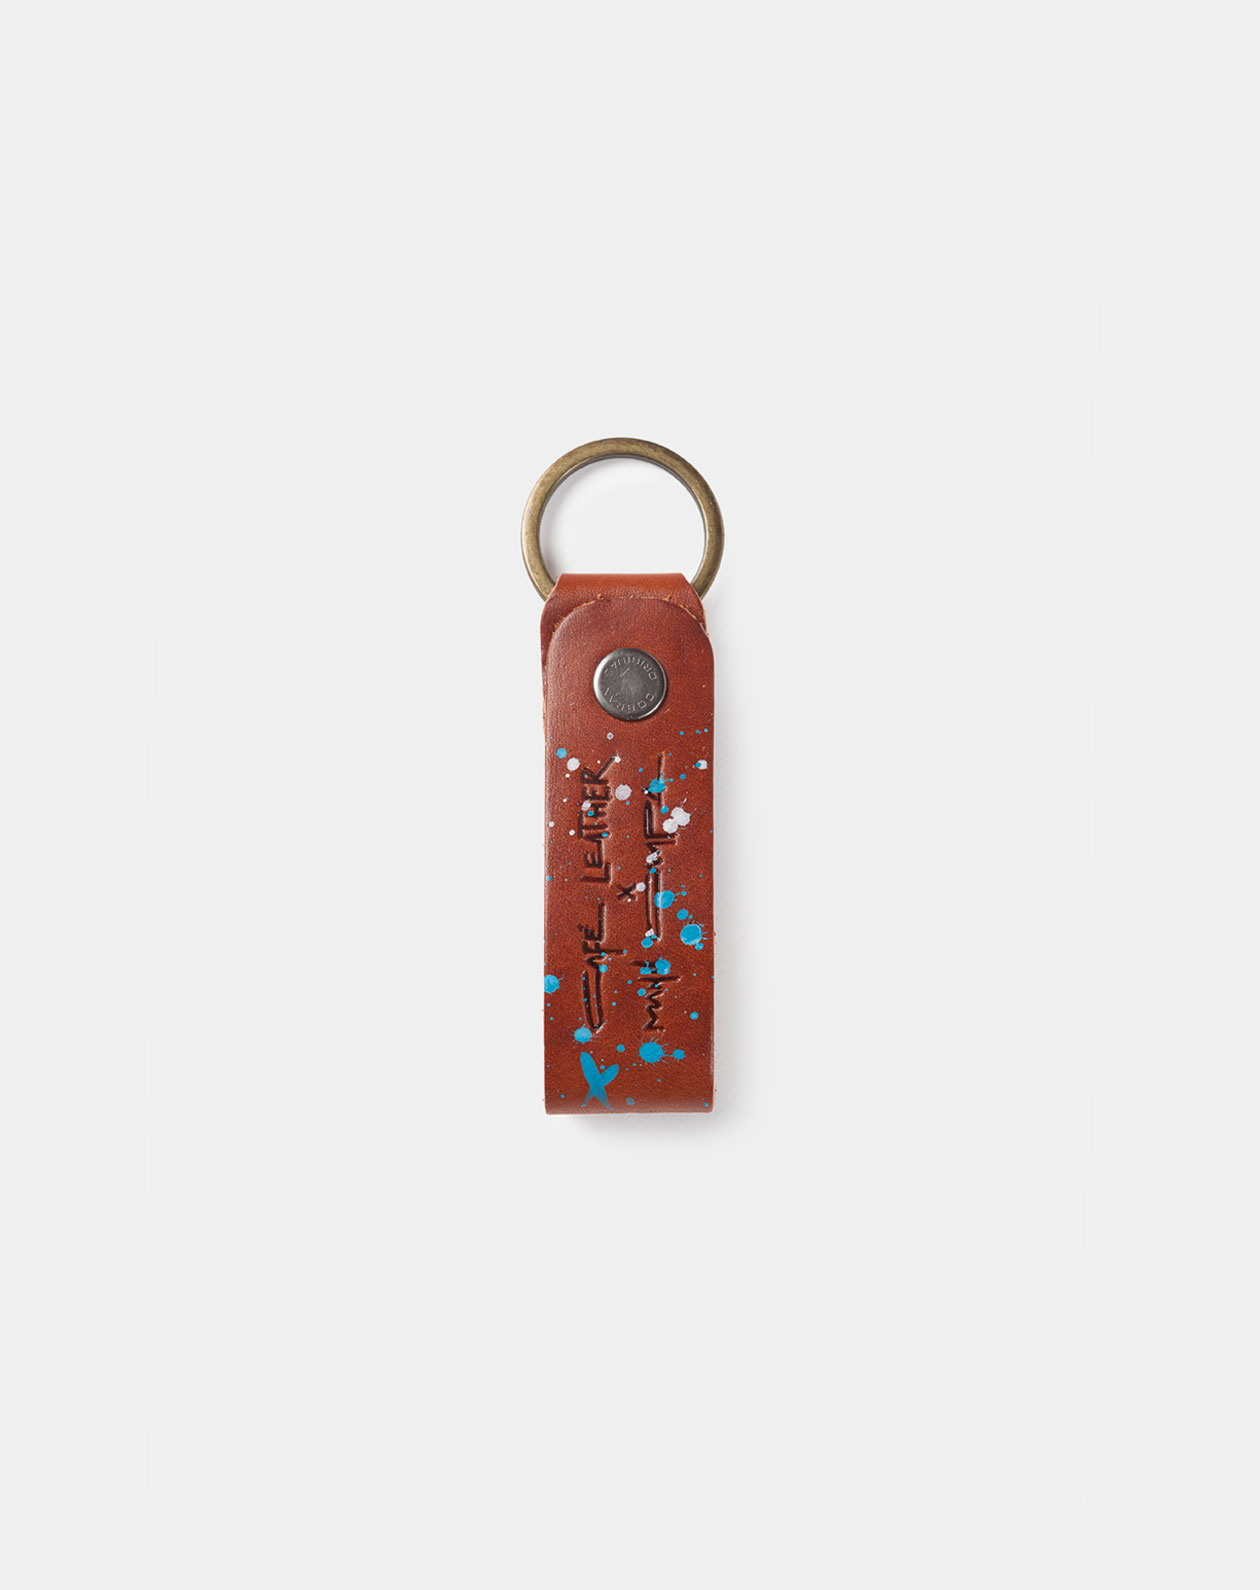 leather keychaine roasted manu campa